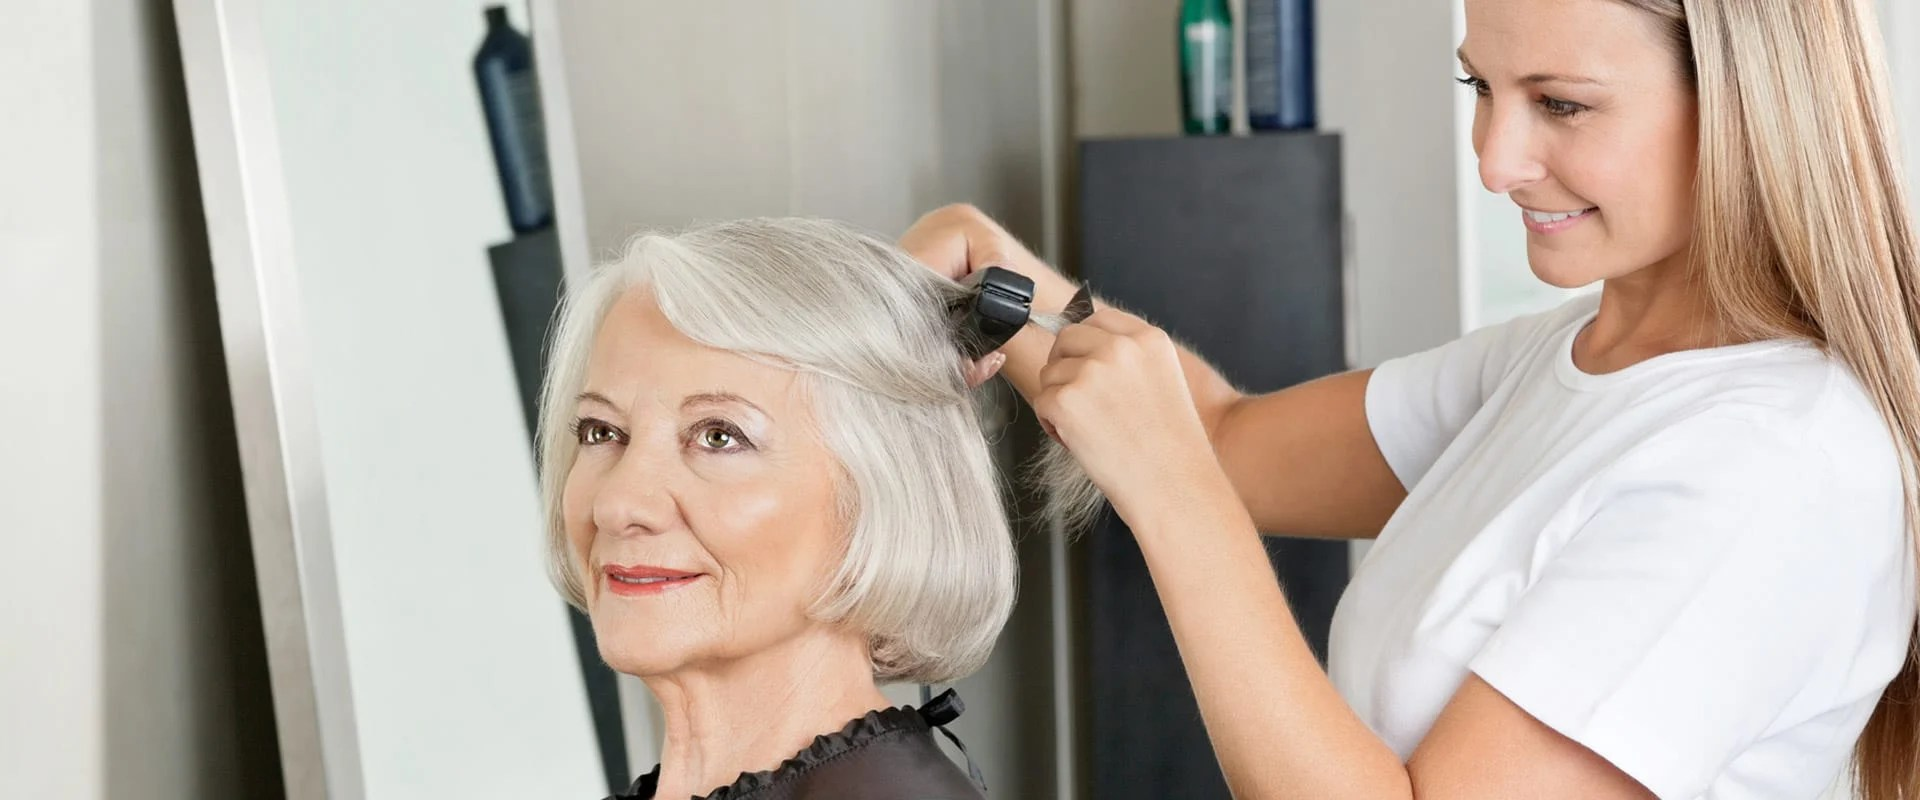 Salon Senior Senior Salon Services Trent Salon